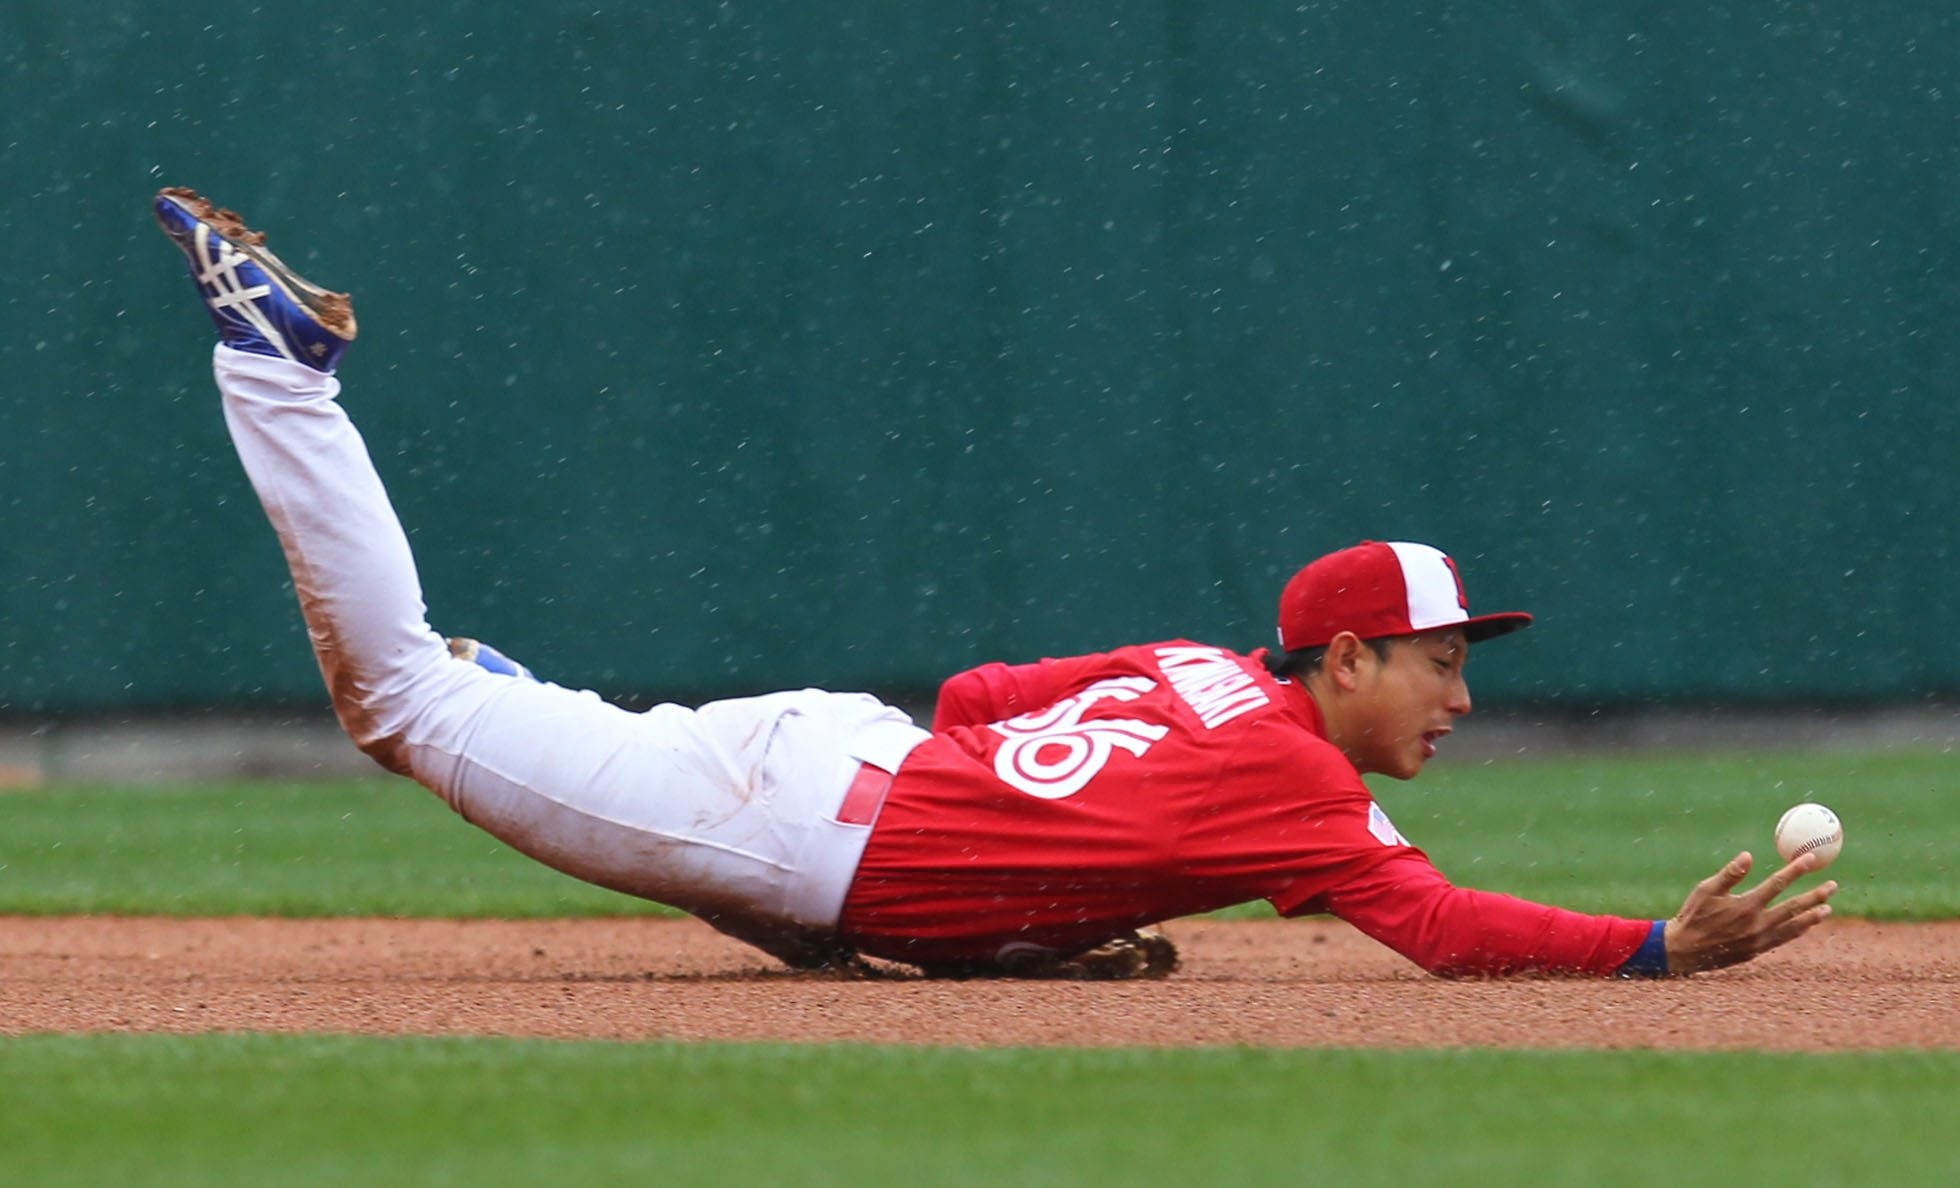 The Bisons' Munenori Kawasaki dives for a grounder during the game with Charlotte at Coca-Cola Field.   file in Buffalo Saturday, May 3, 2014.  (Mark Mulville/Buffalo News)